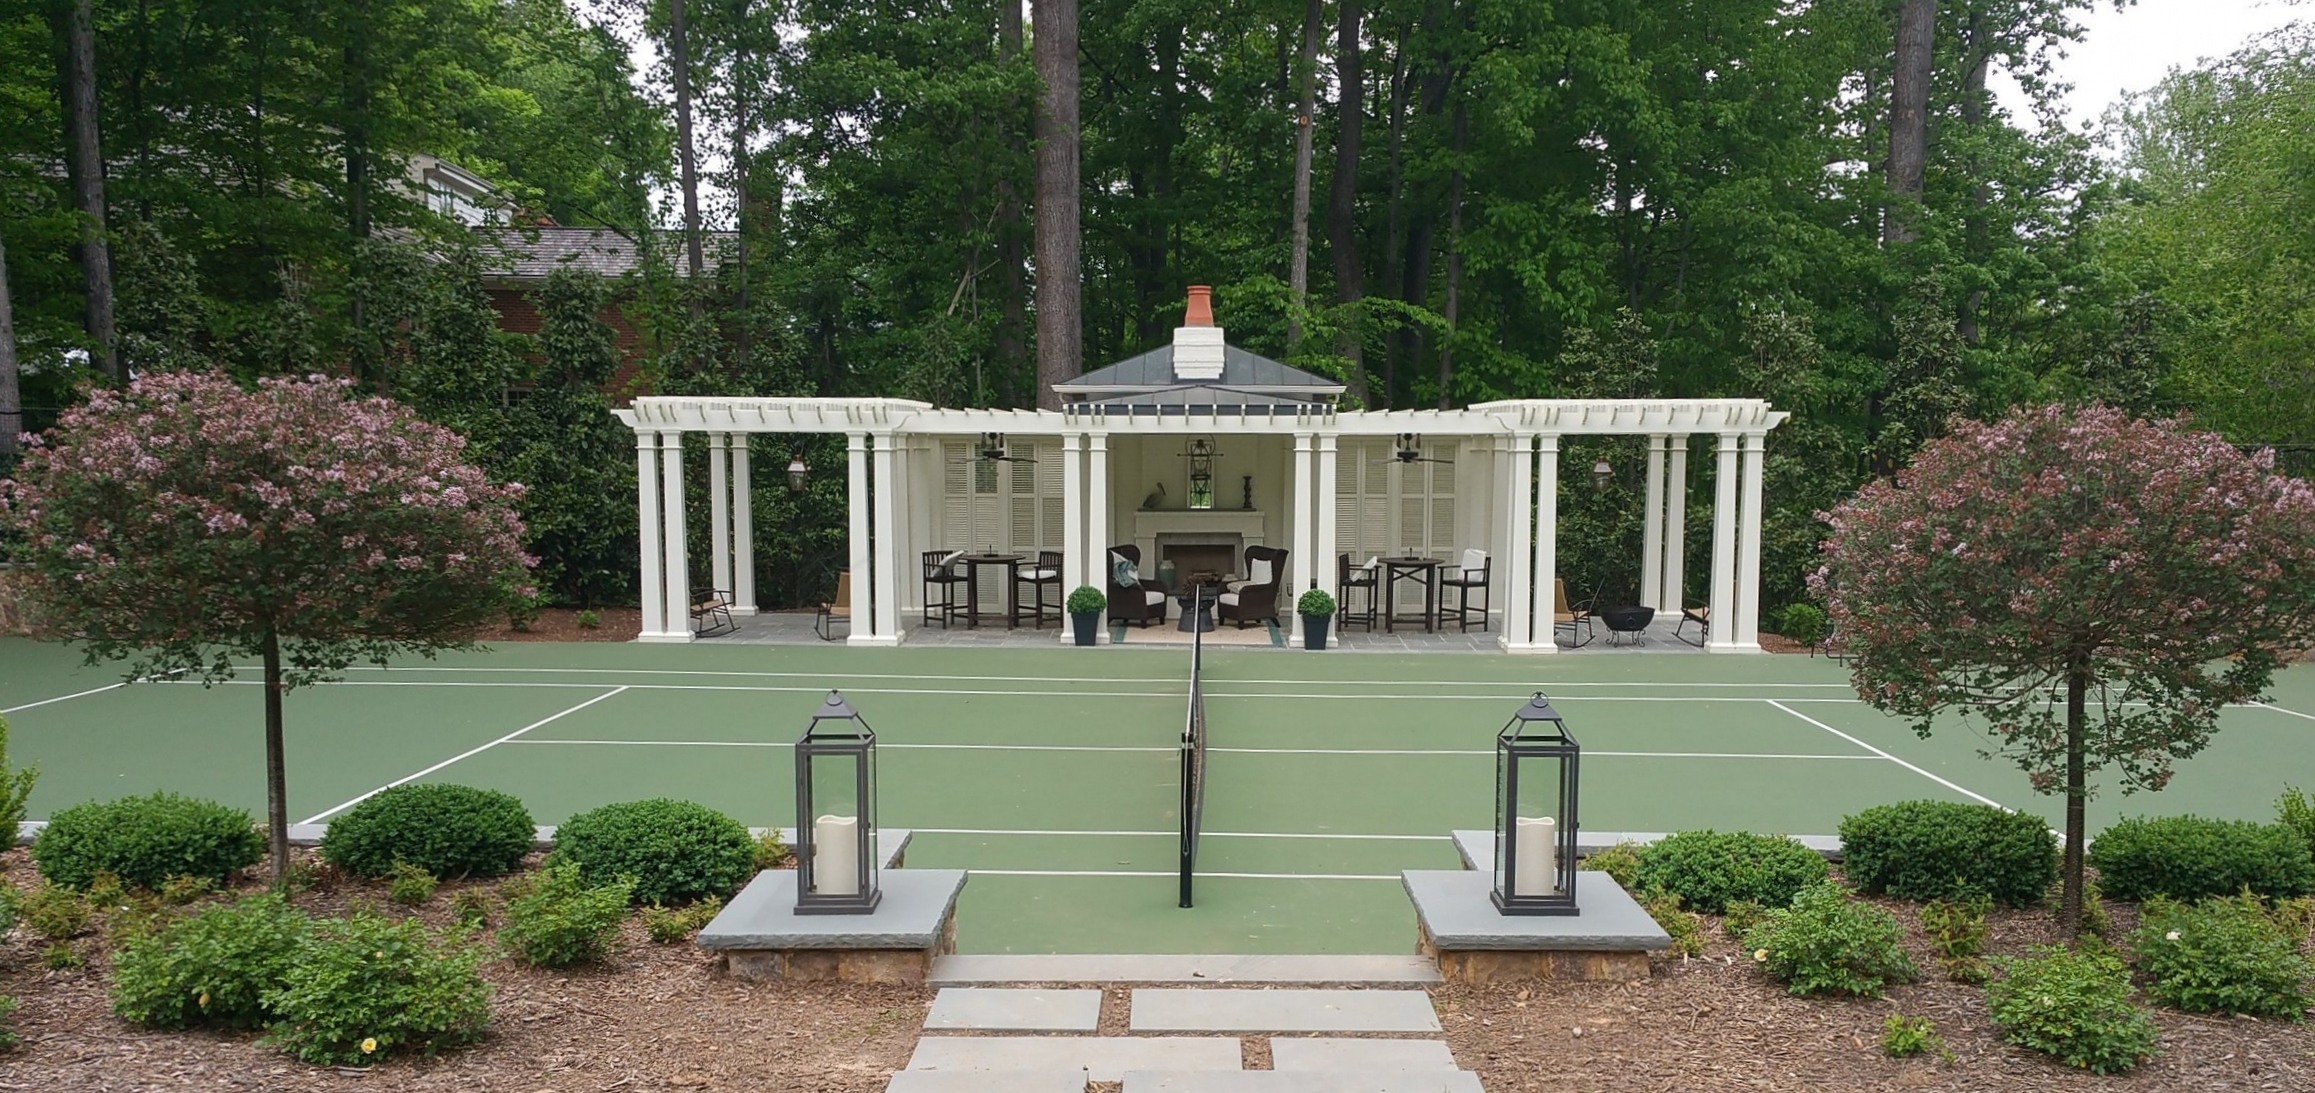 Enchanting+Tennis+Pavilion+McLean,+Virginia.jpg